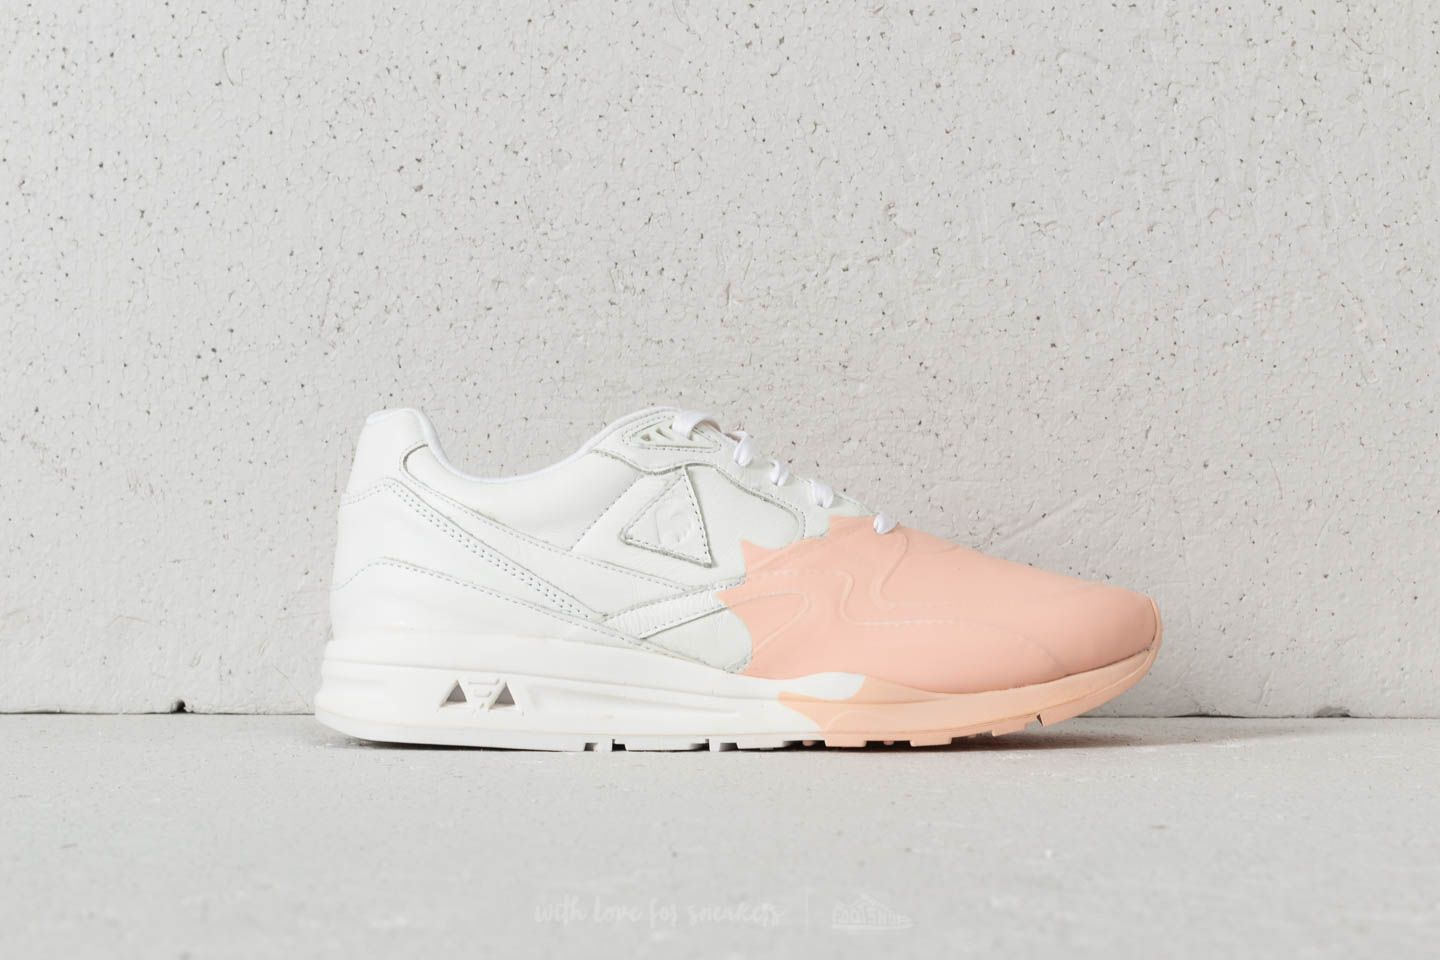 76acb5fb6dba le coq sportif LCS R800 Leather Optical White  Scallop Sheel at a great  price £